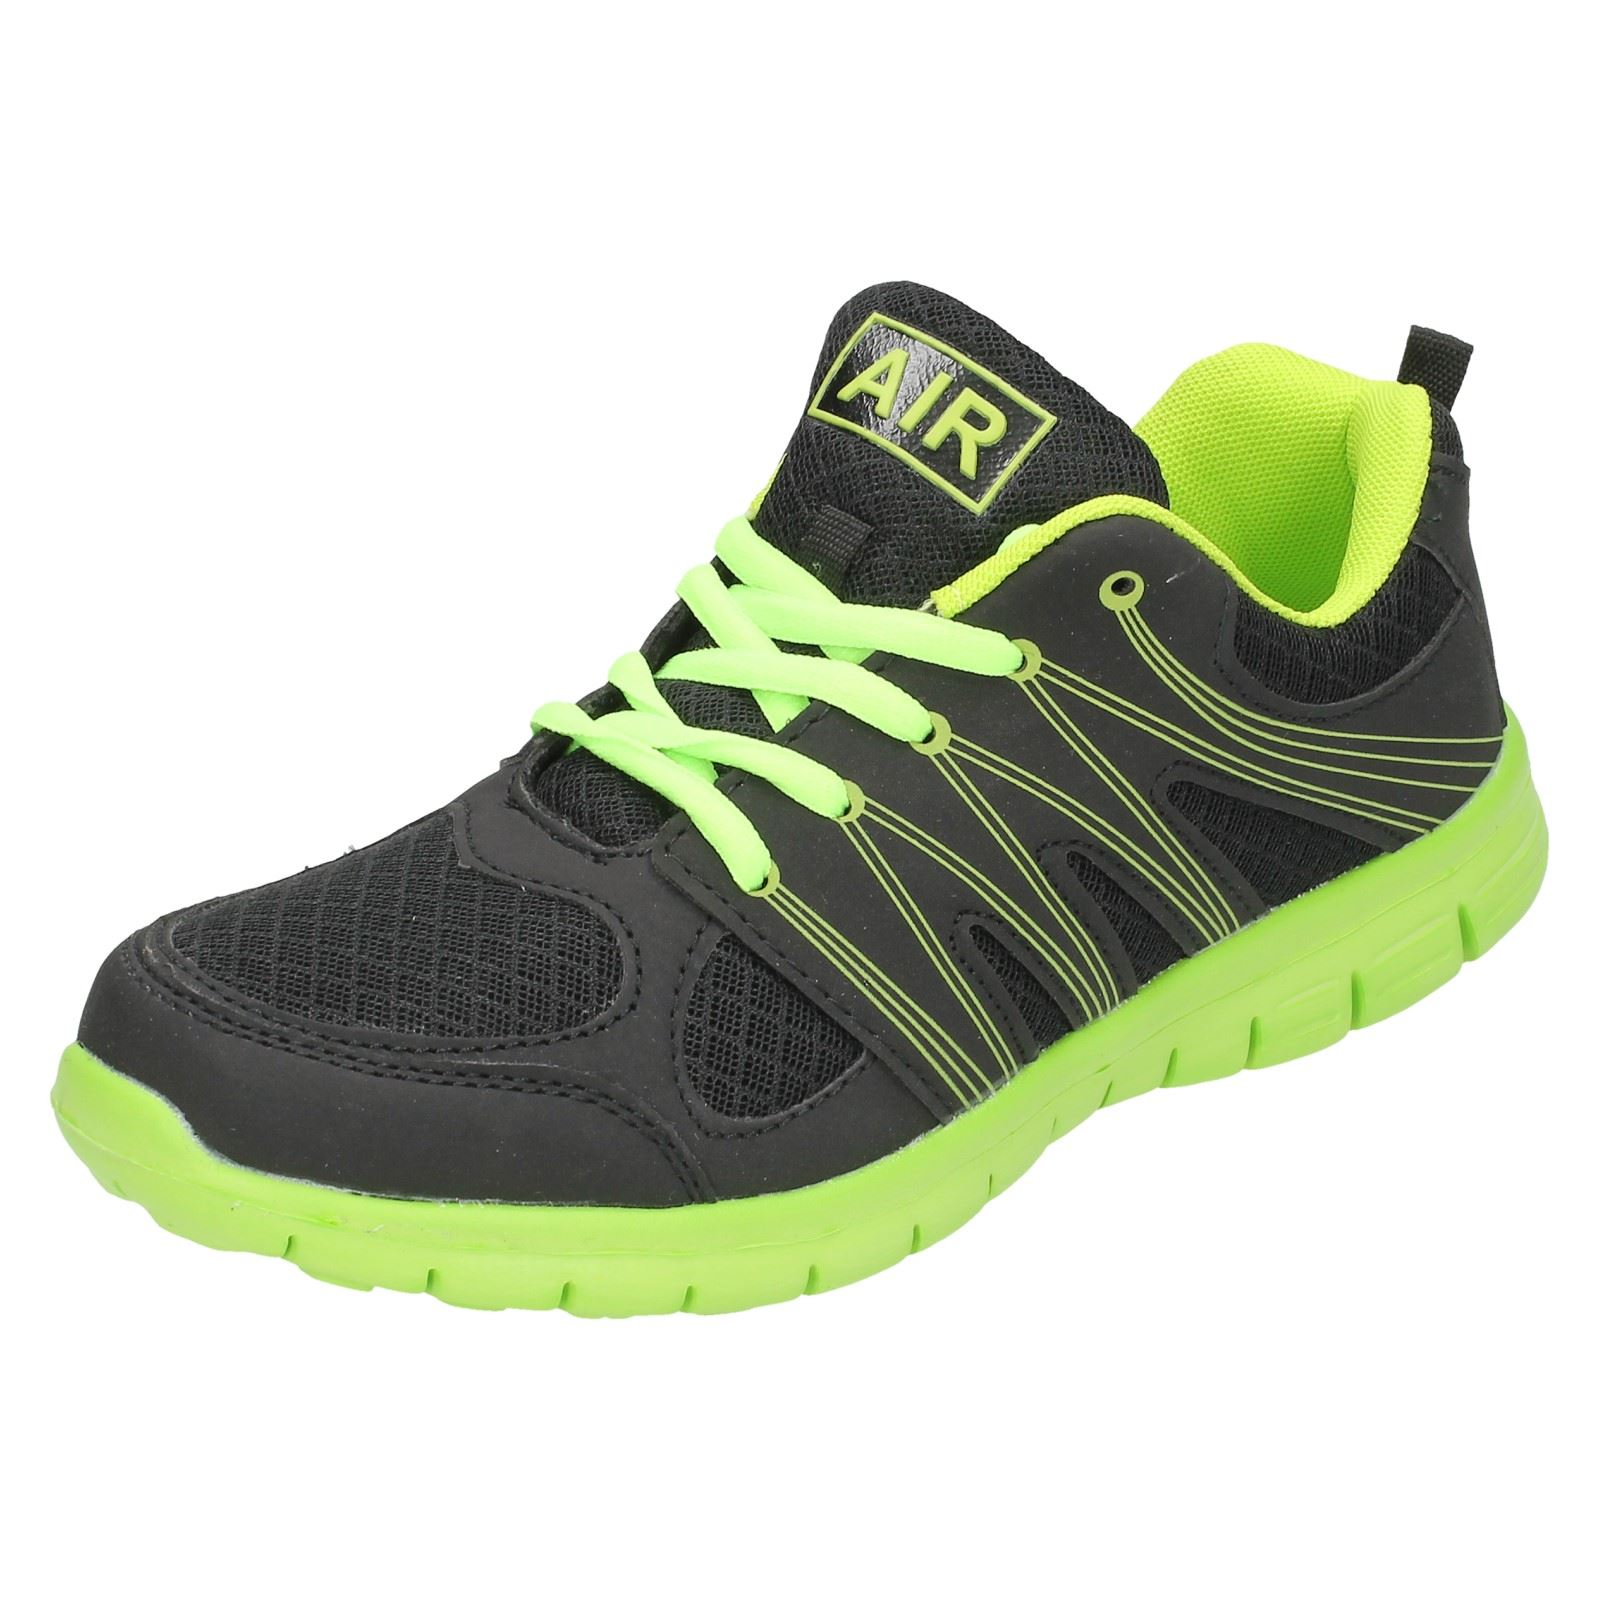 59a6c49804a9 Mens Airtech Trainers Label Sprint Black  Neon Green 8 UK Standard ...